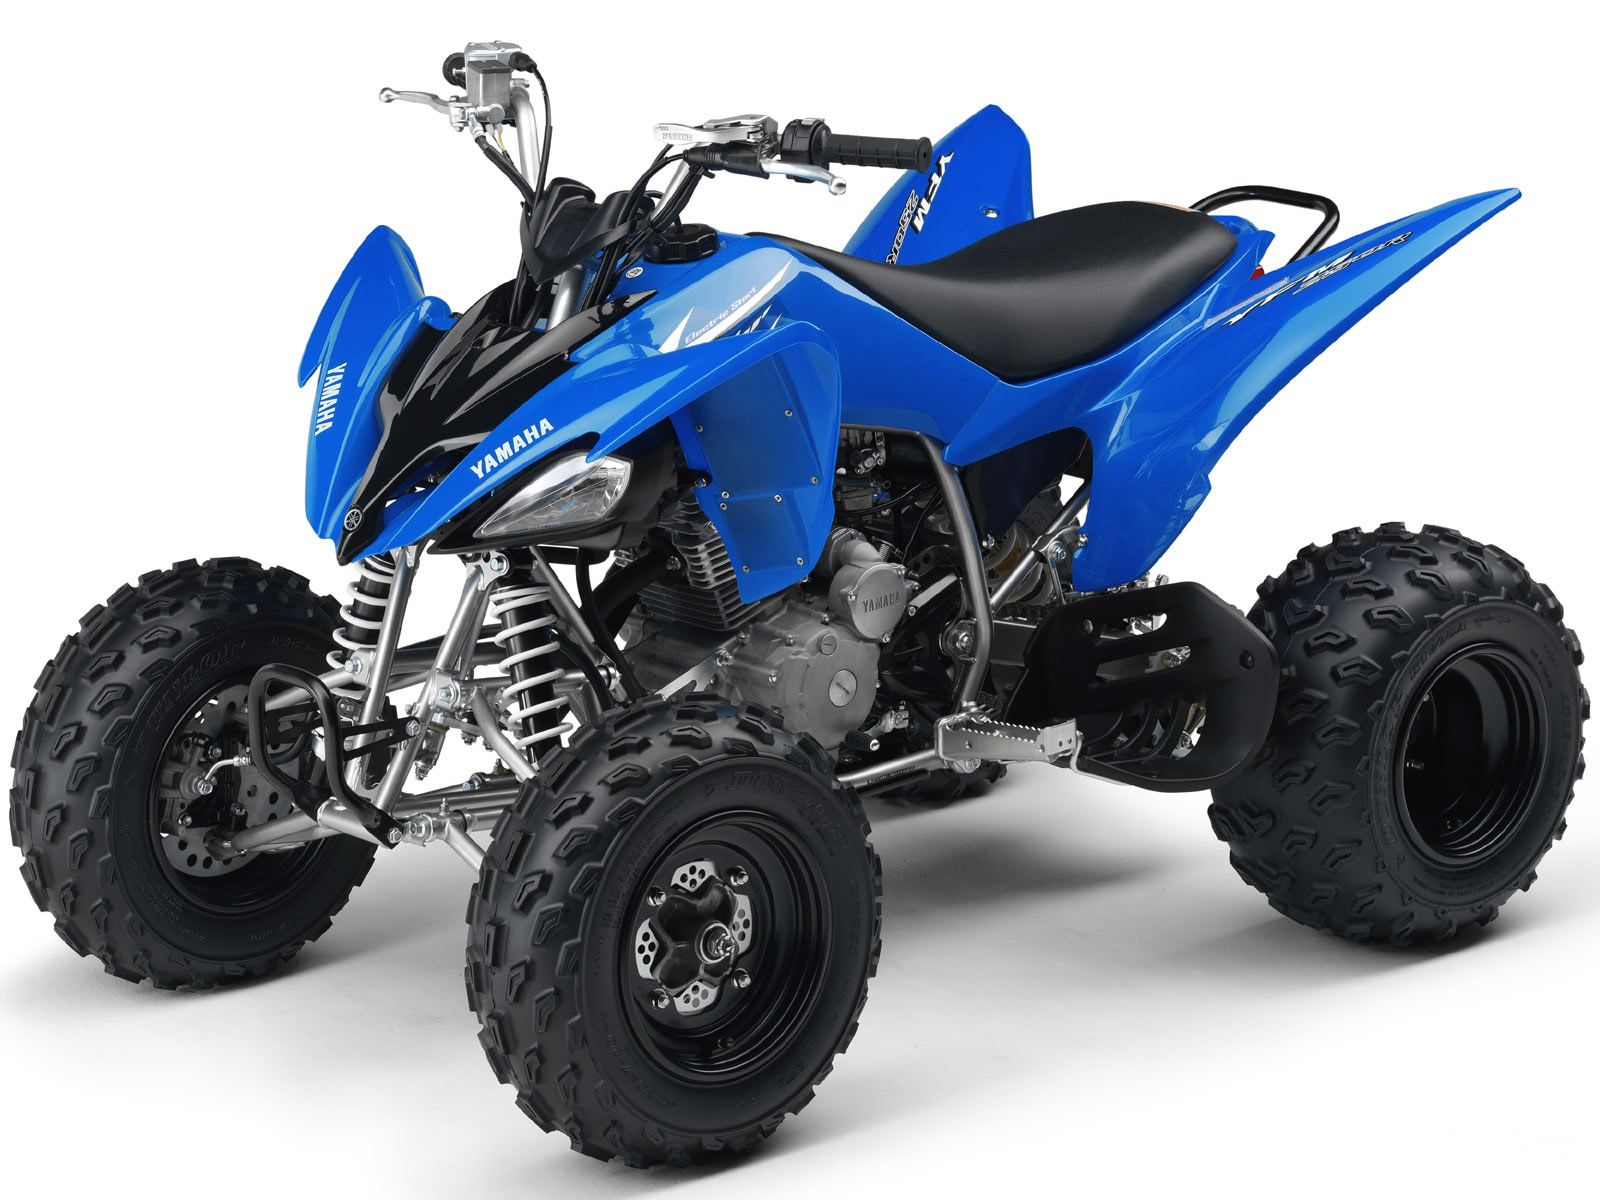 2008 YAMAHA YFM 250 Raptor ATV pictures, specifications ...